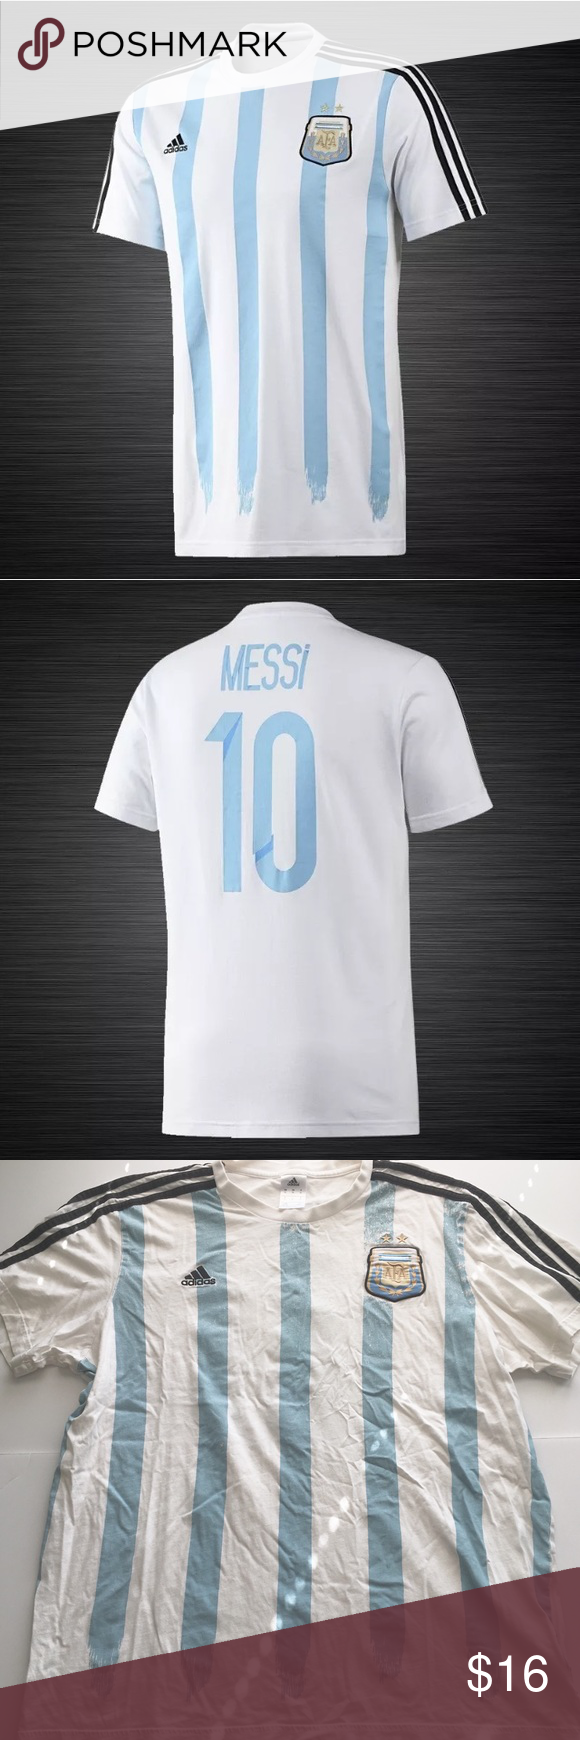 Adidas Messi AFA Football Soccer Tee Adidas tee shirt size extra large for  Messi. Item is in good used condition! Please check out my other listings  as I do ... 2b55f1b9e